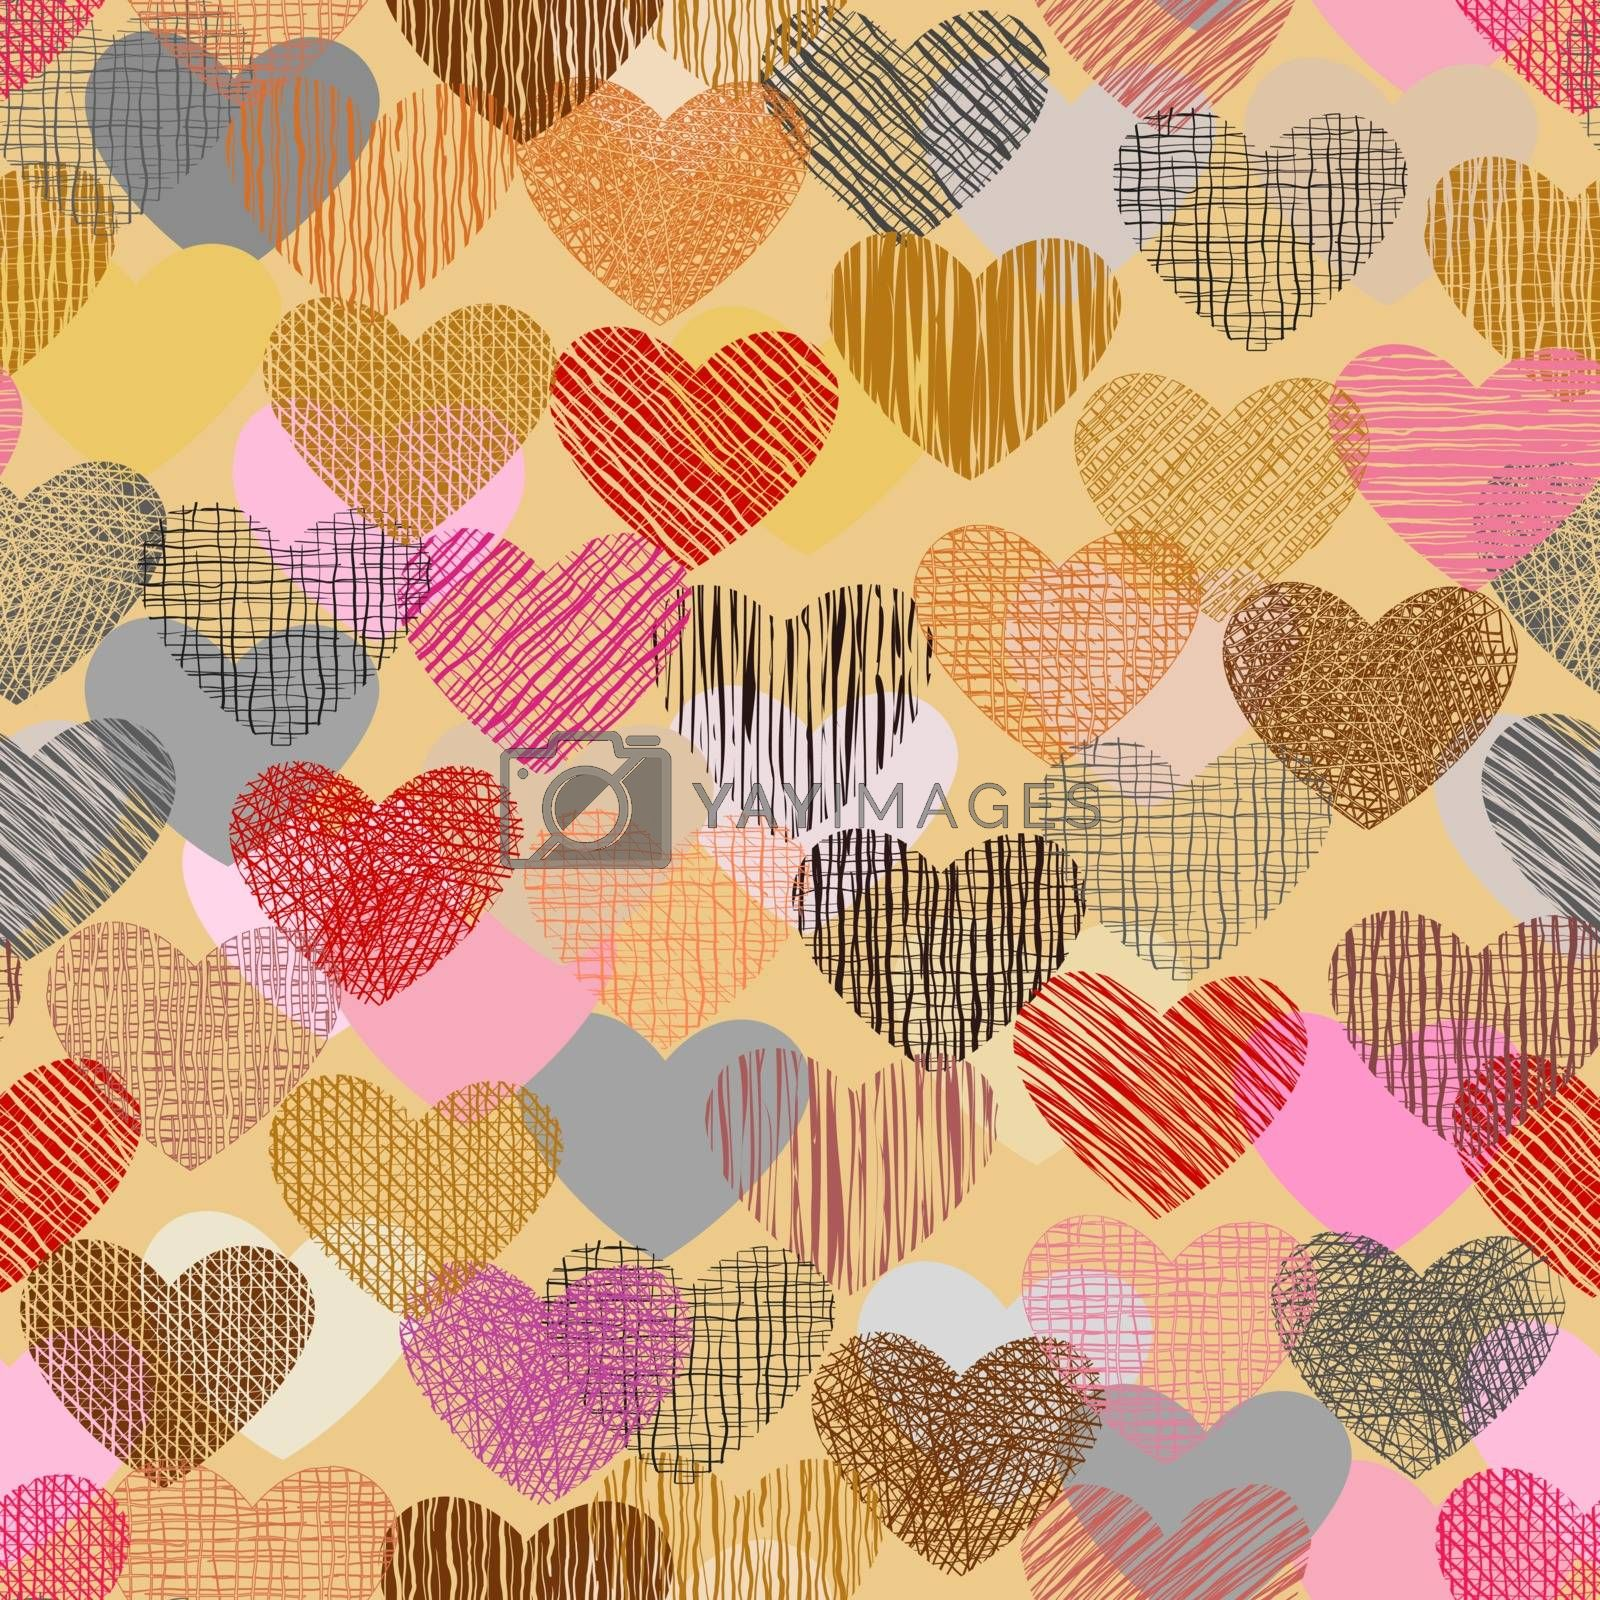 Color doodle in heart shape with seamless background. by narinbg